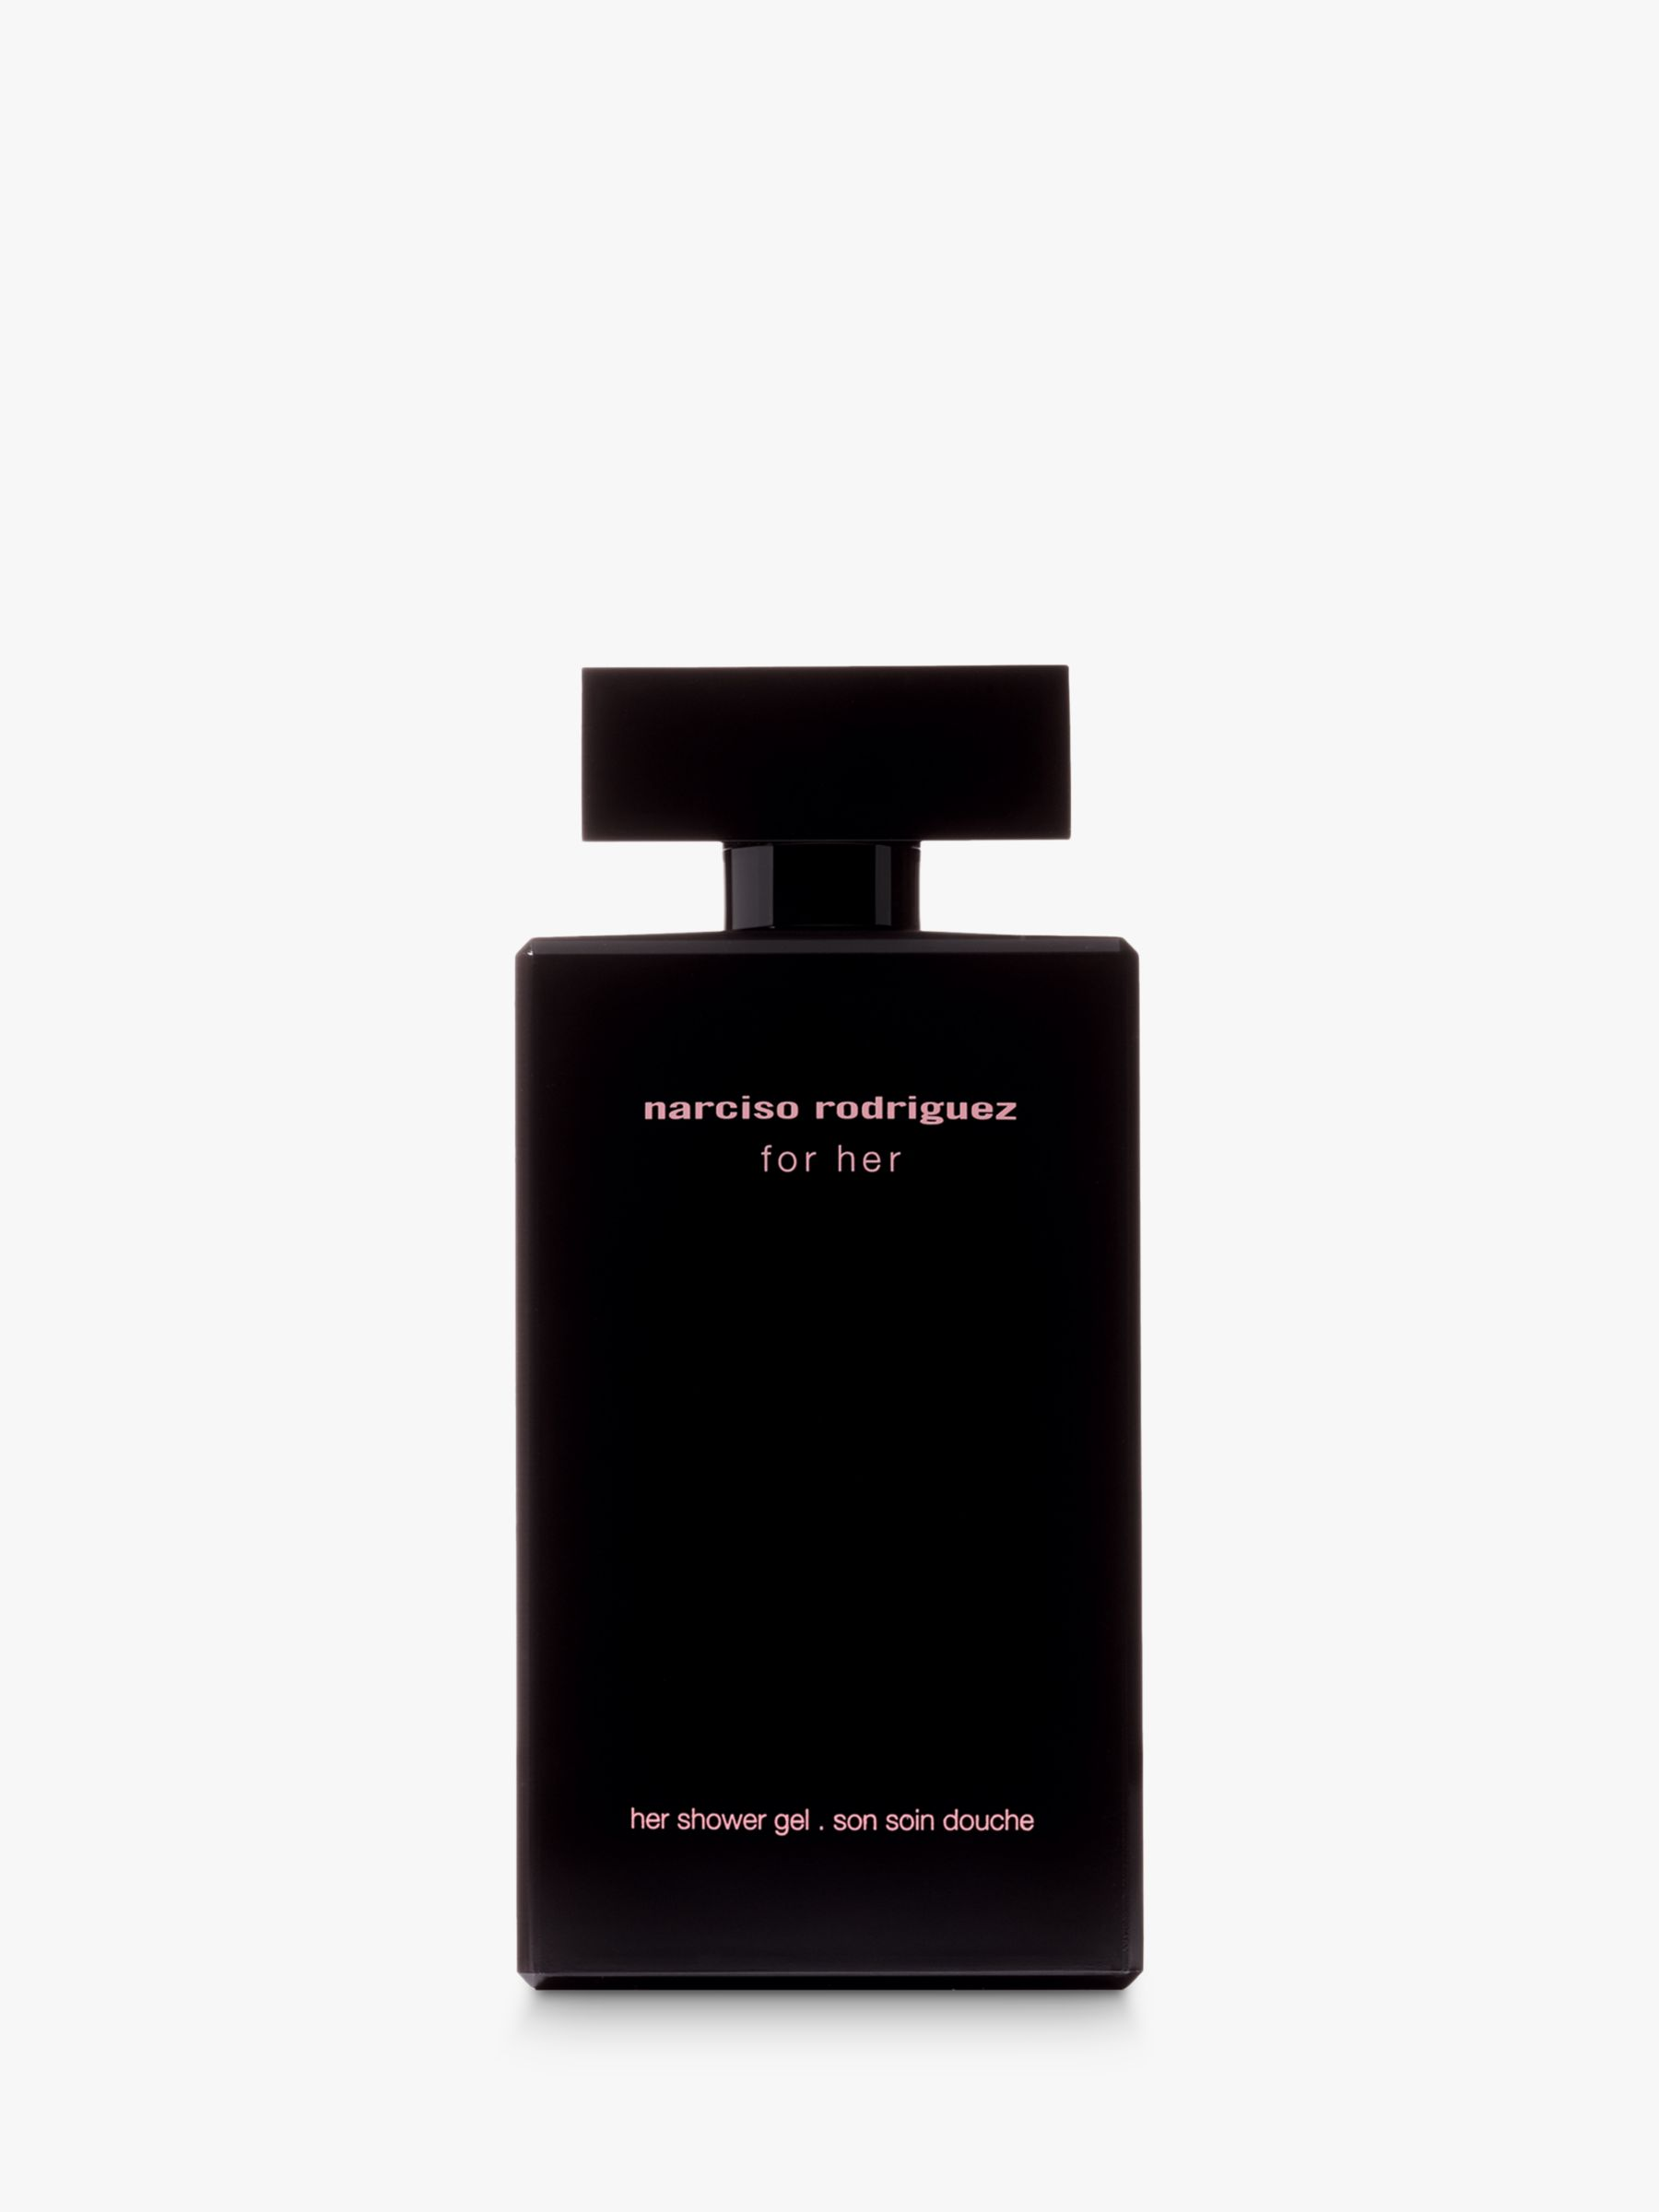 Narciso Rodriguez Narciso Rodriguez for Her Shower Gel, 200ml